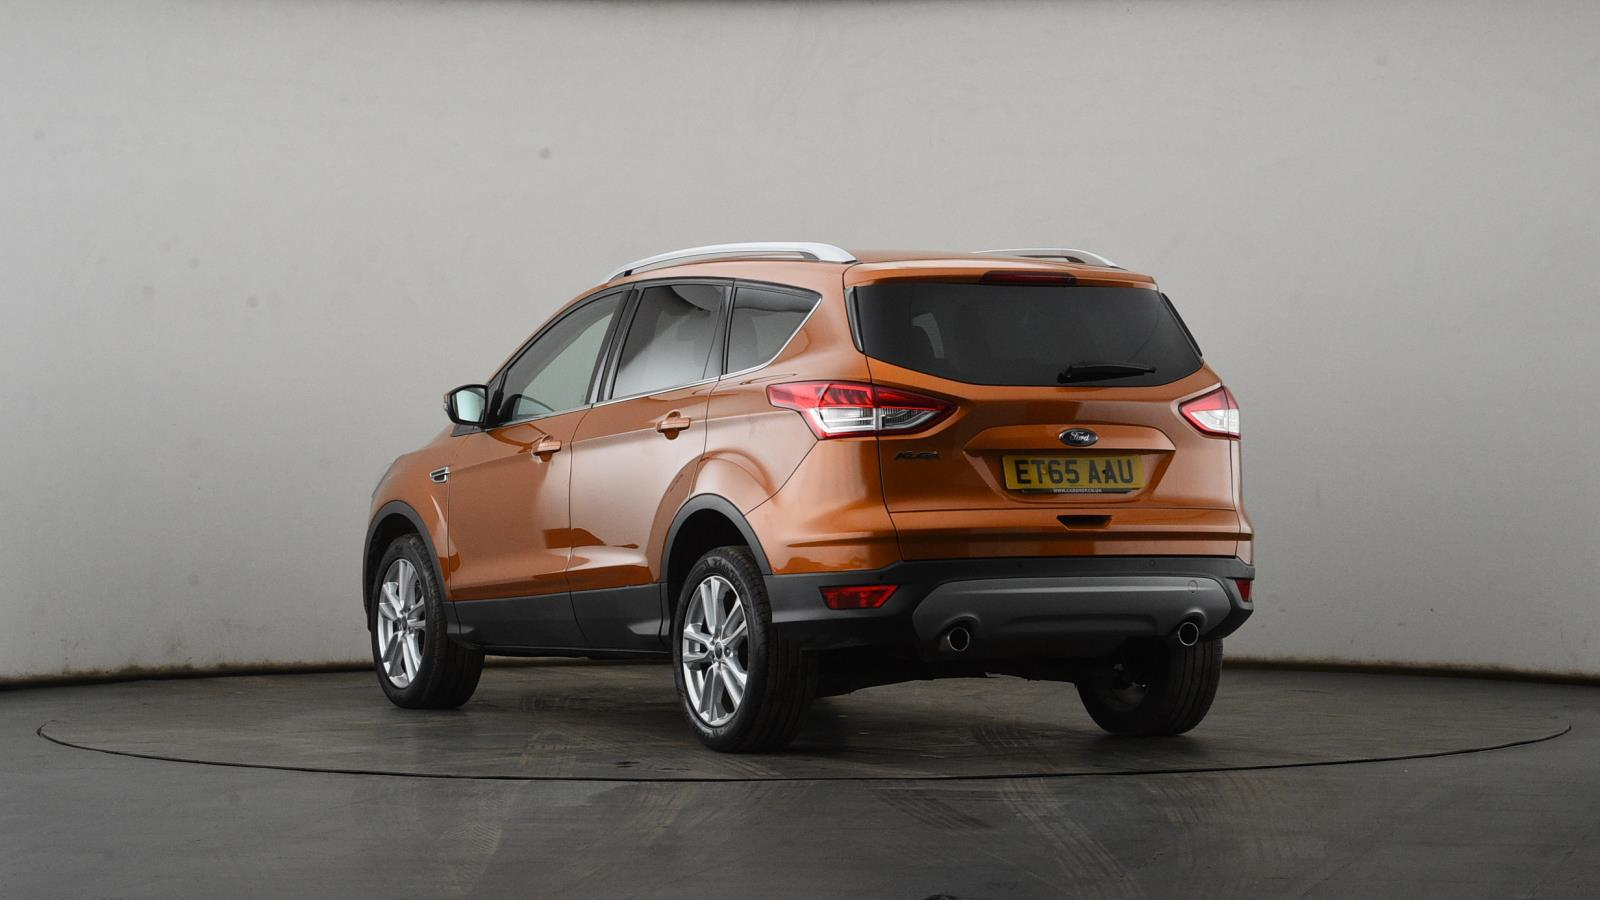 Used FORD KUGA 2.0 TDCi 150 Titanium X 5dr 2WD | Orange | ET65AAU ...